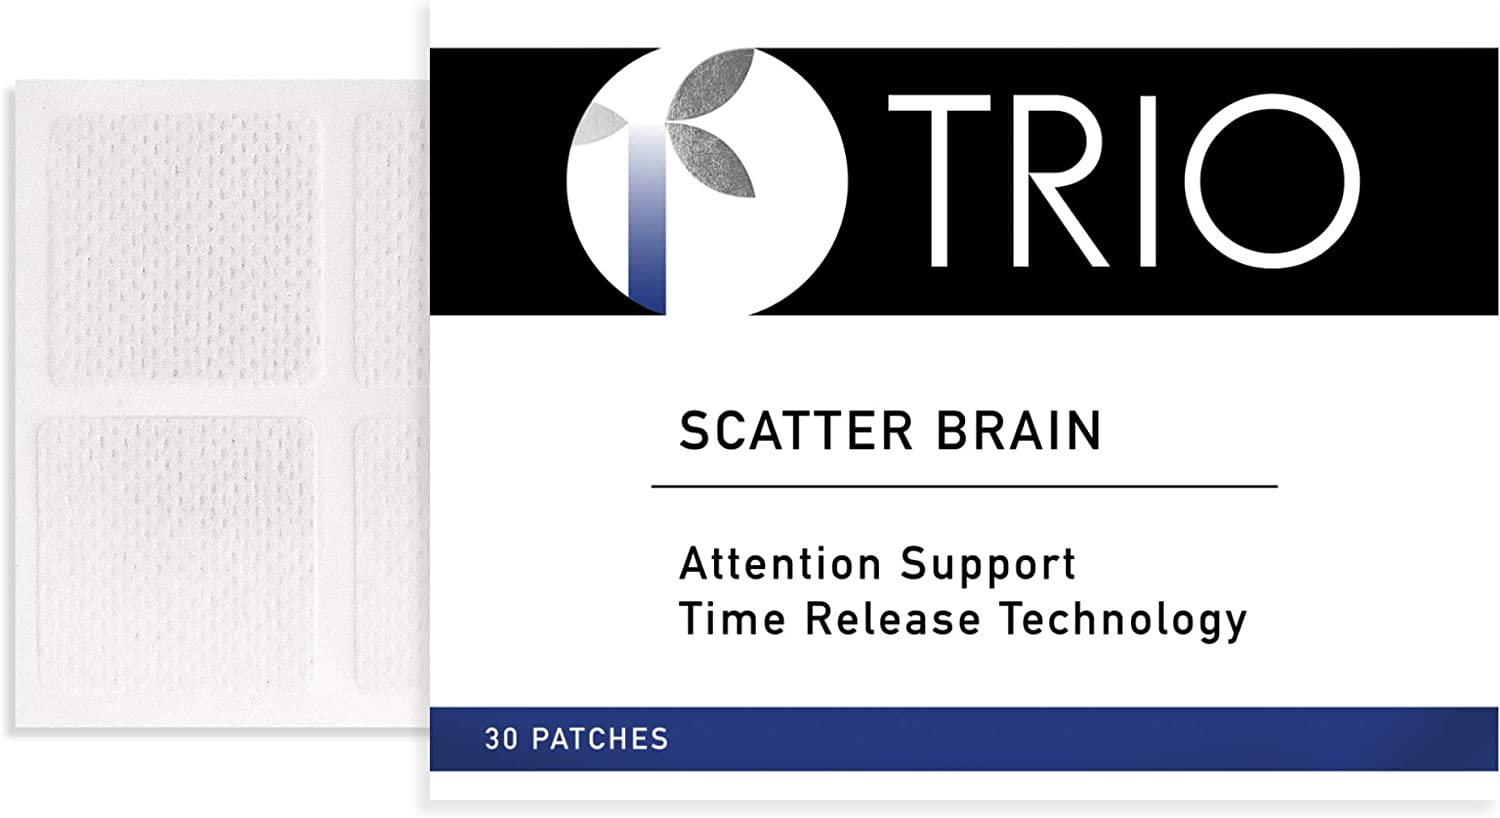 Trio Scatter Brain